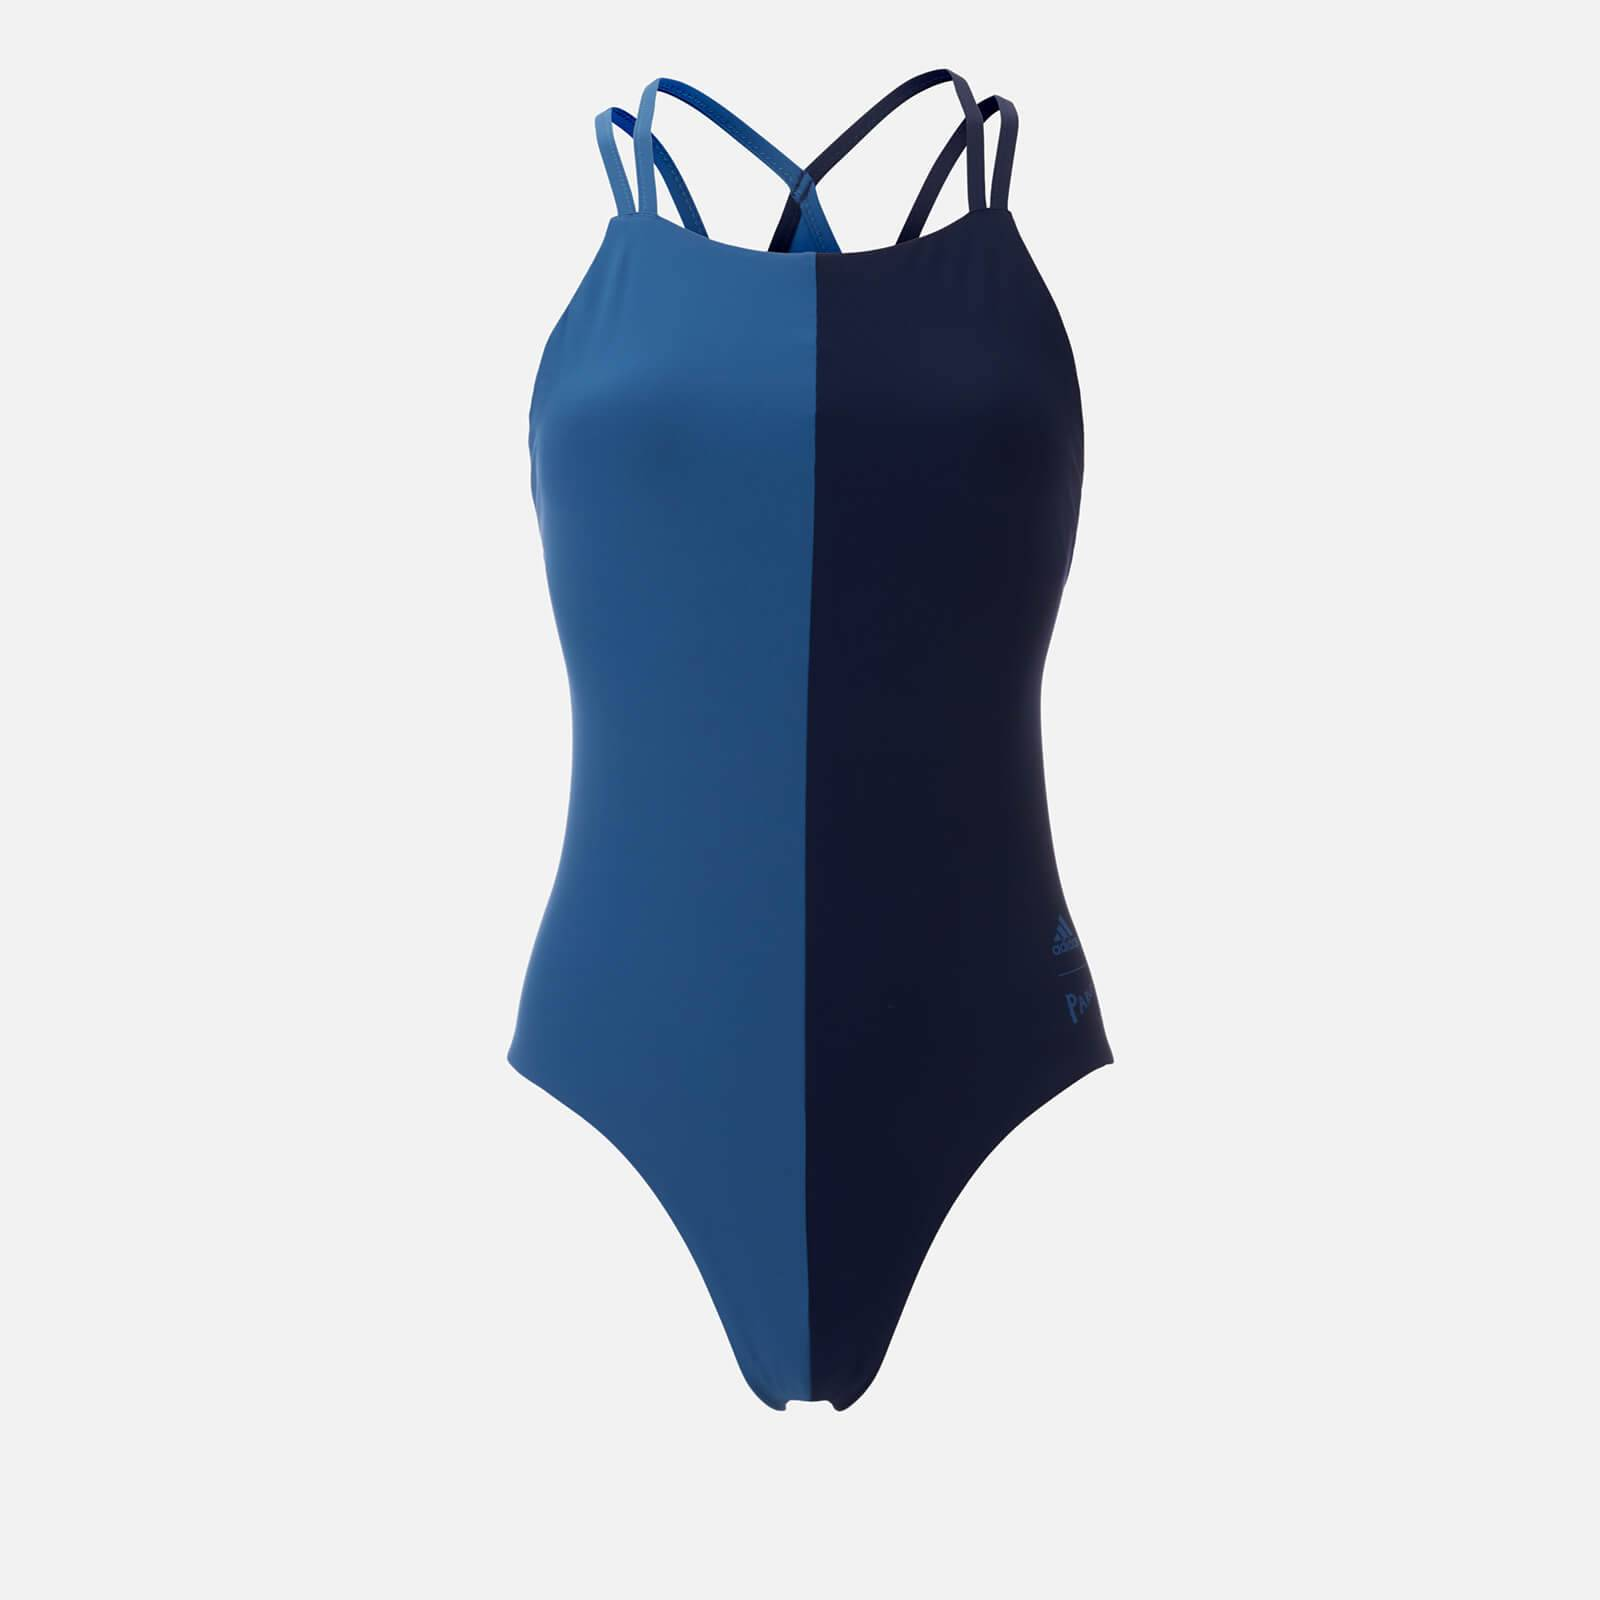 adidas Women's Fit Parley Suit - Blue/Black - 32 Inch (Chest Size) - Multi